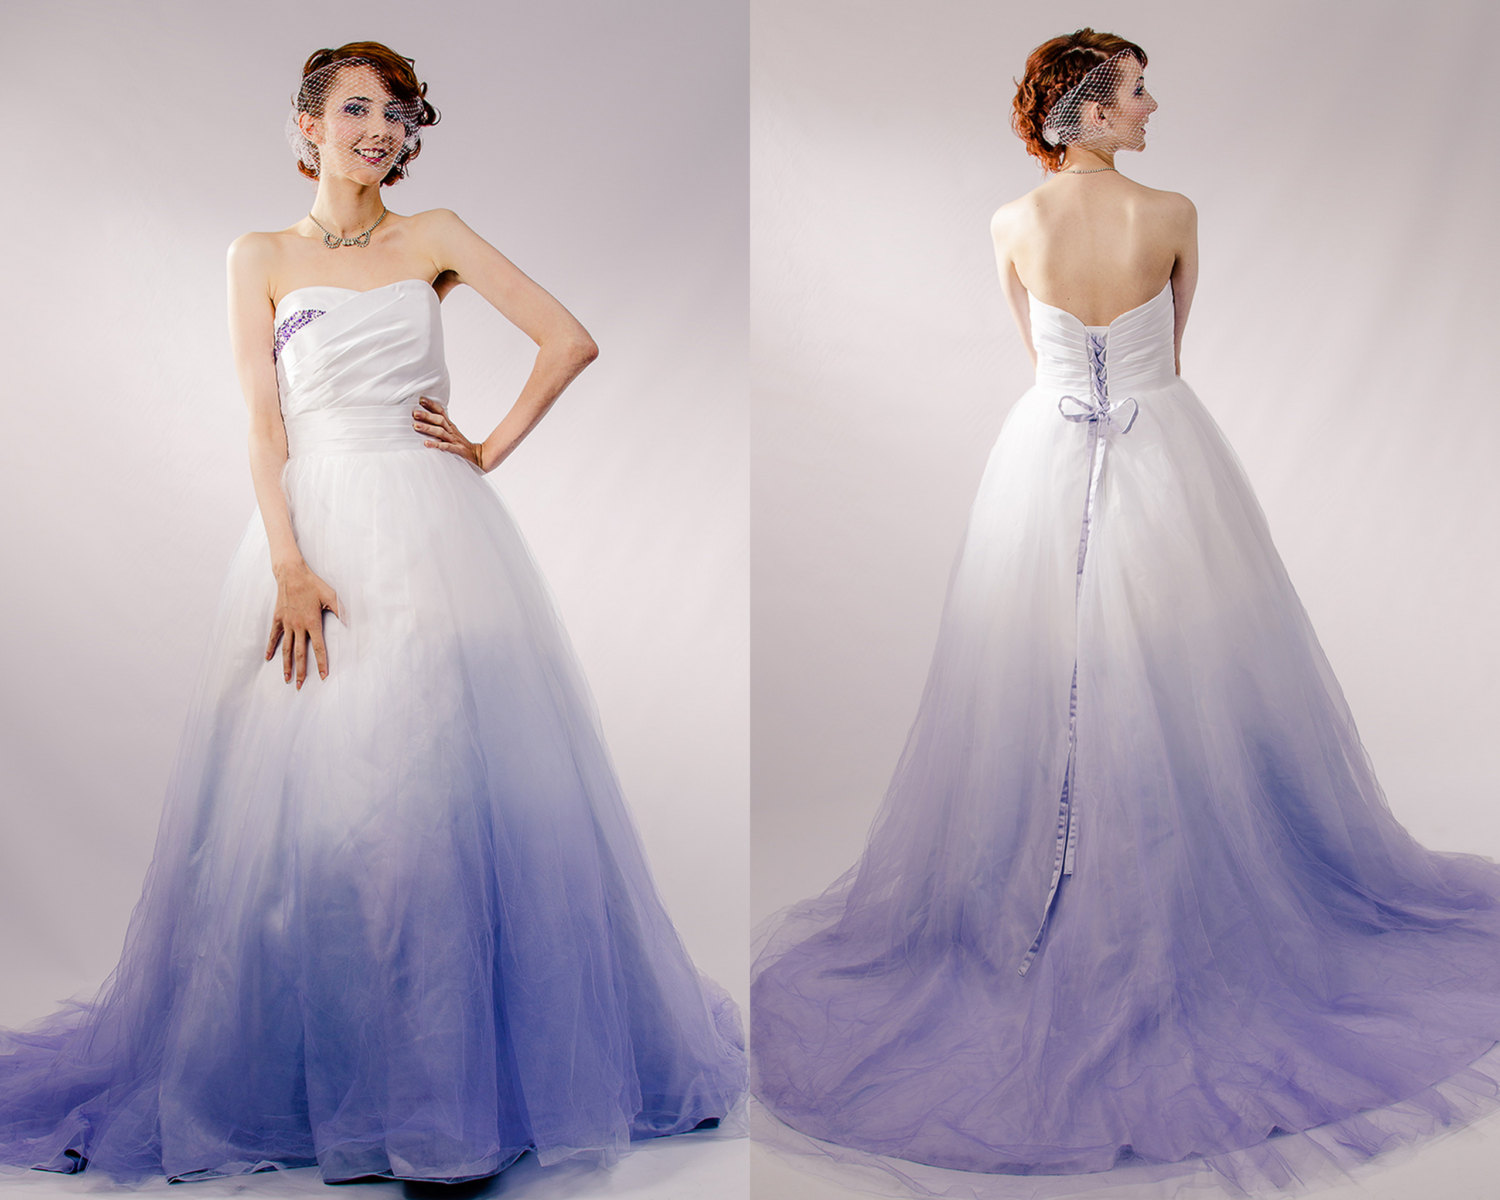 Glamour Gradient Colored Wedding Dress: Ideas For Colorful